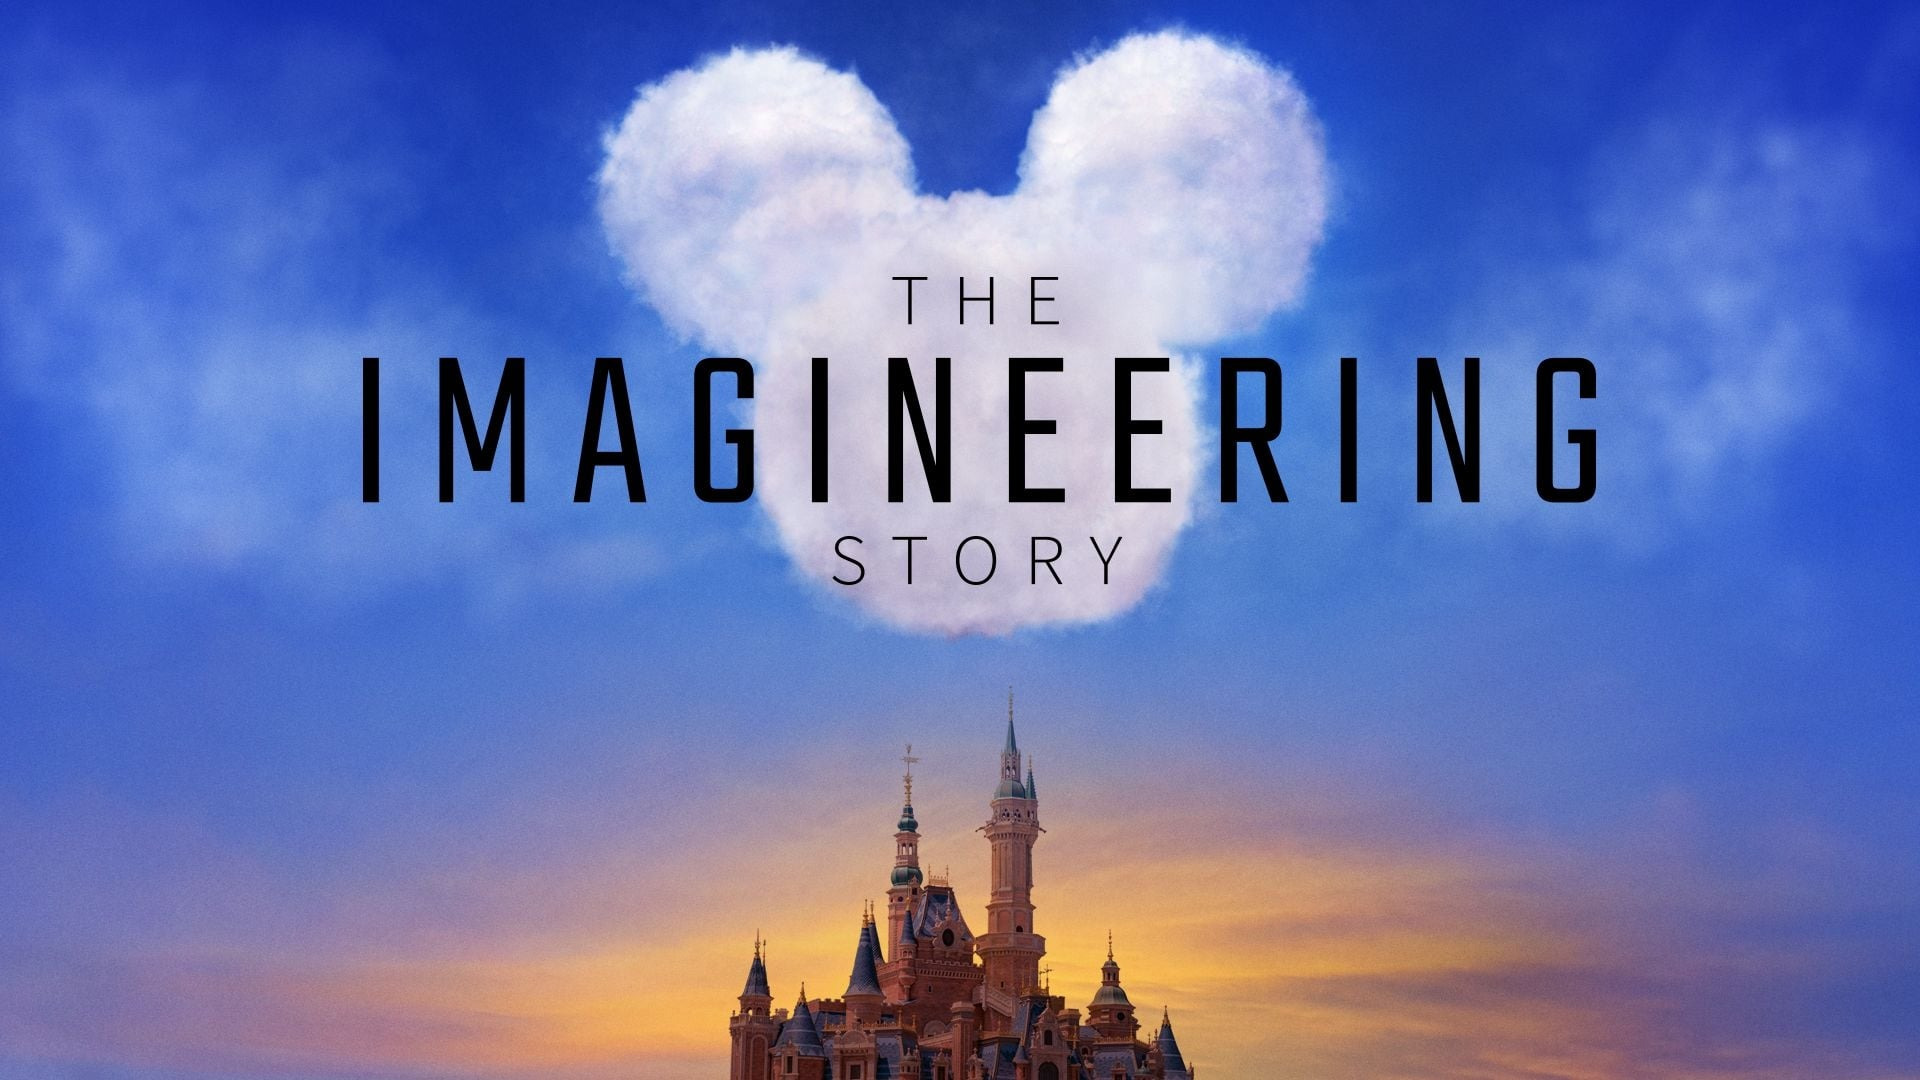 Show The Imagineering Story